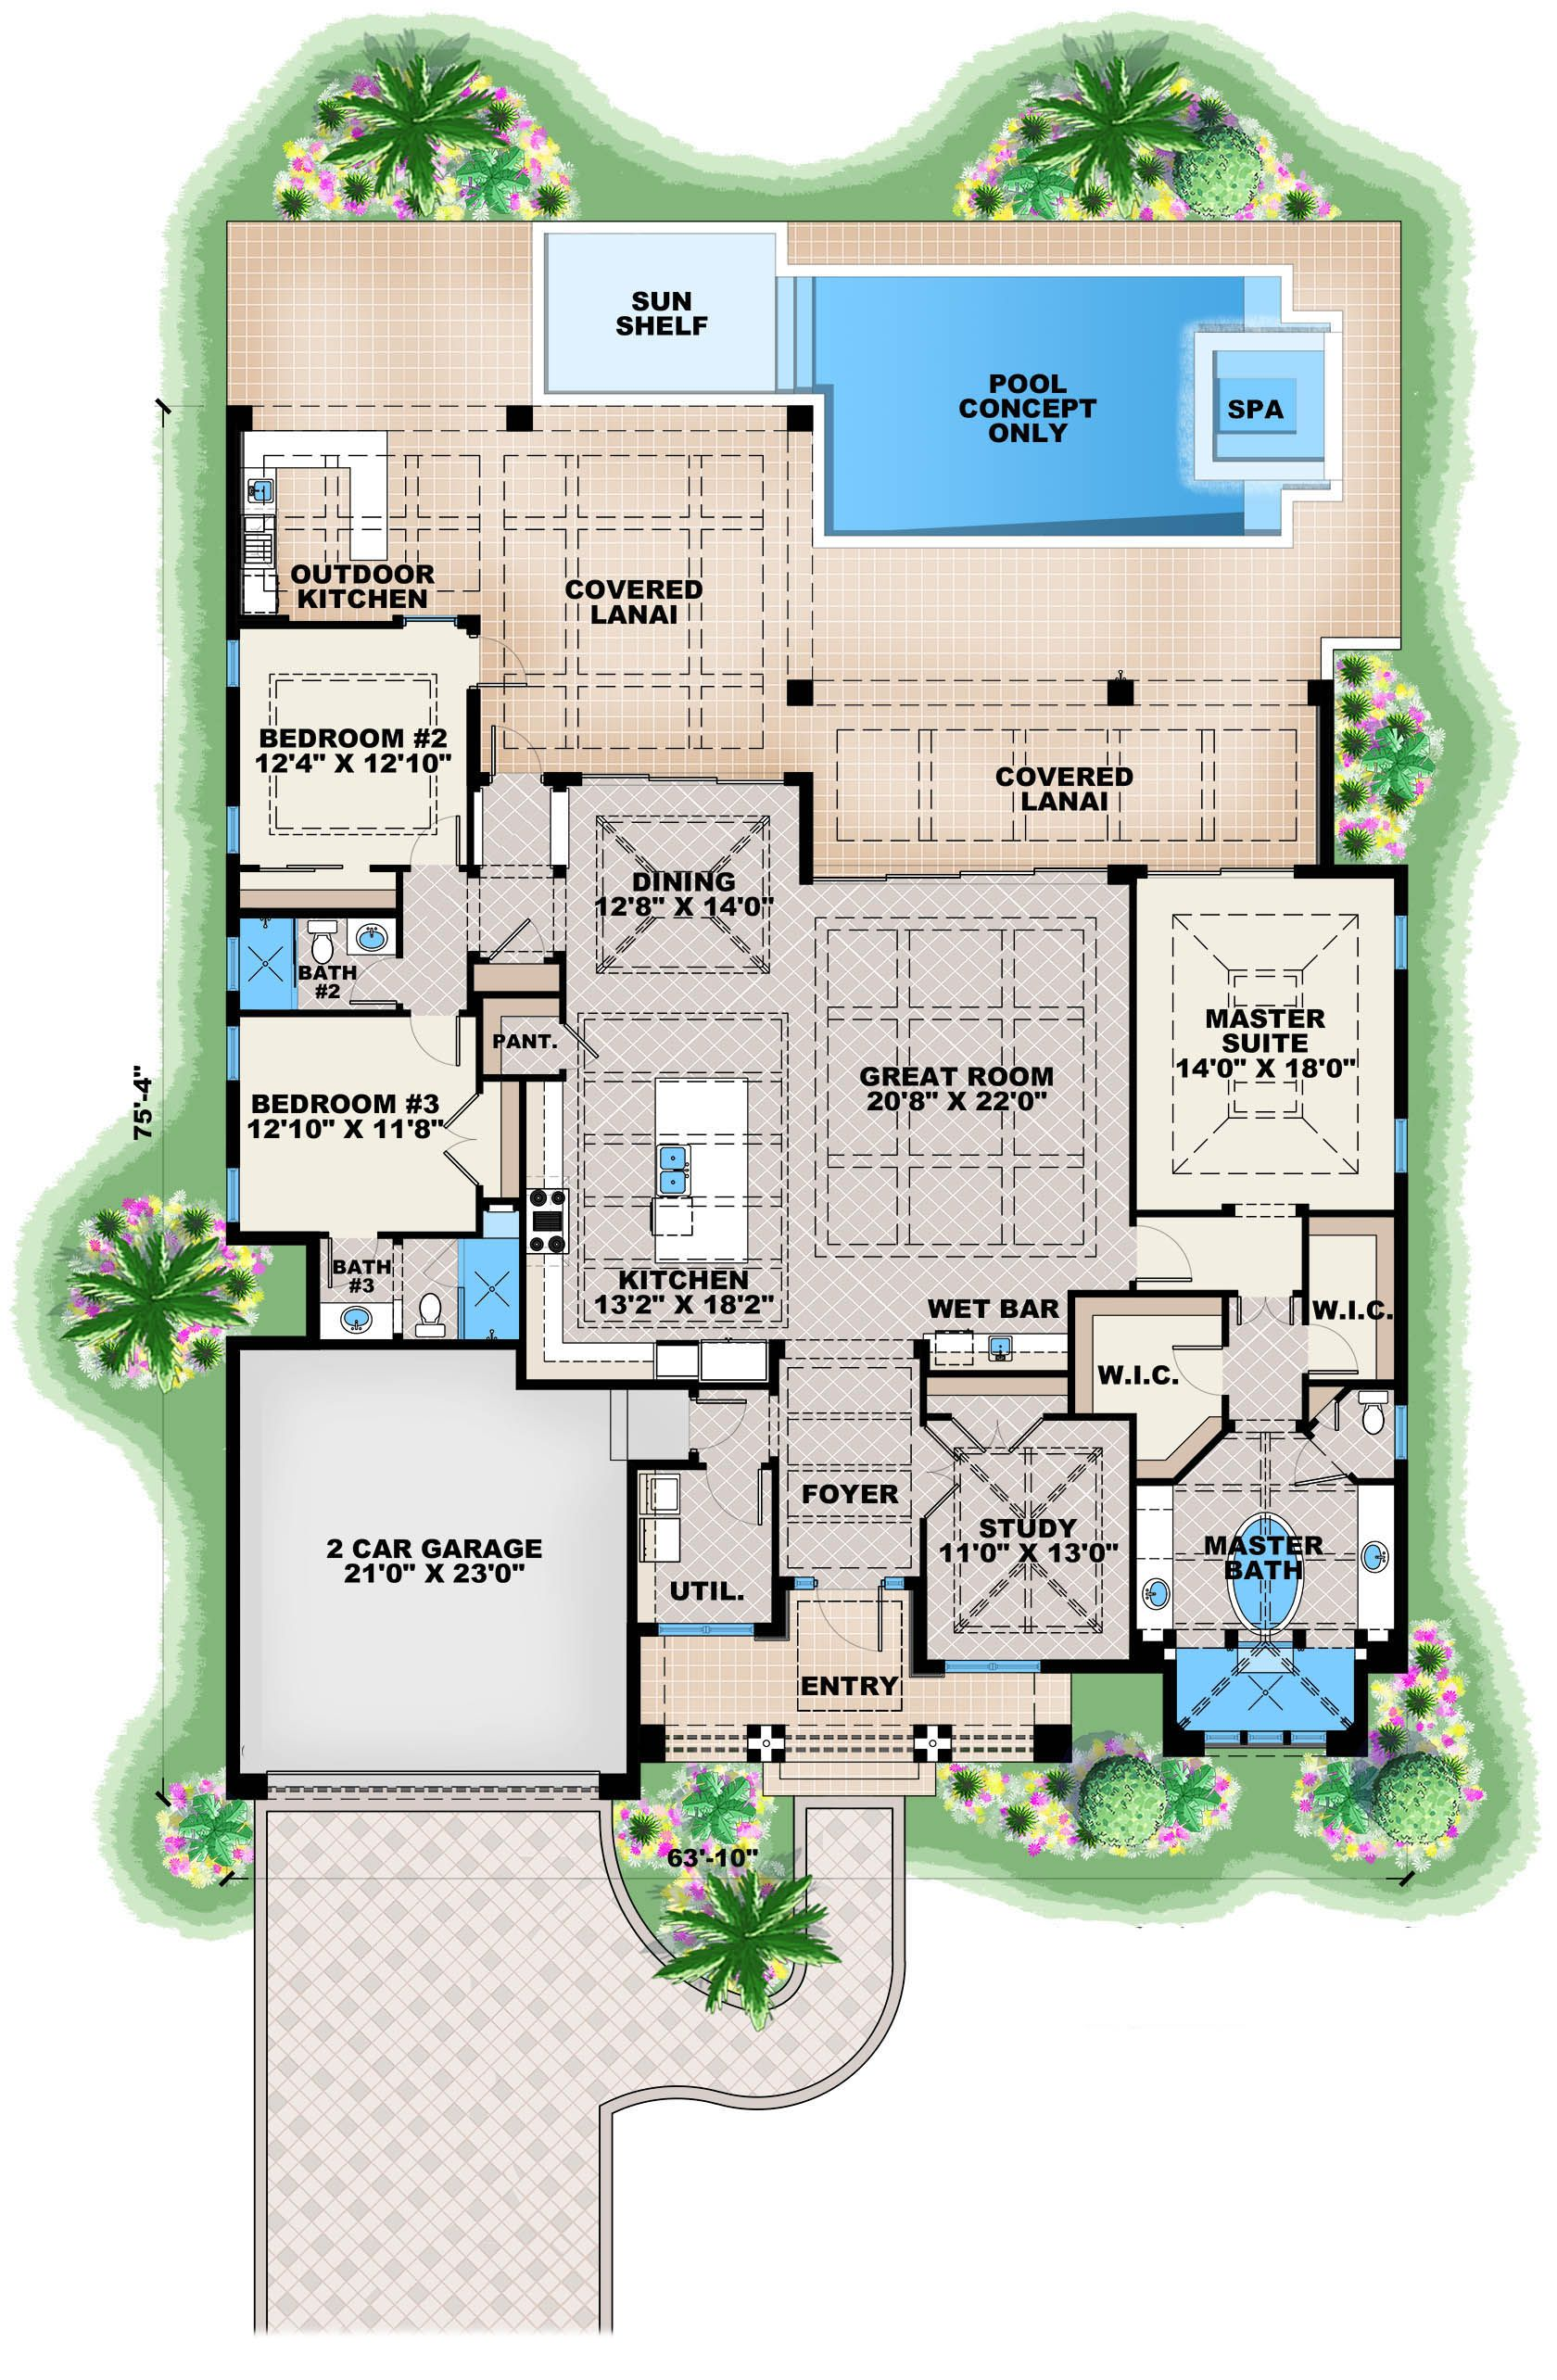 This Contemporary Style Home Plan With Modern Influences House Plan 175 1134 Has 2684 Sq Ft